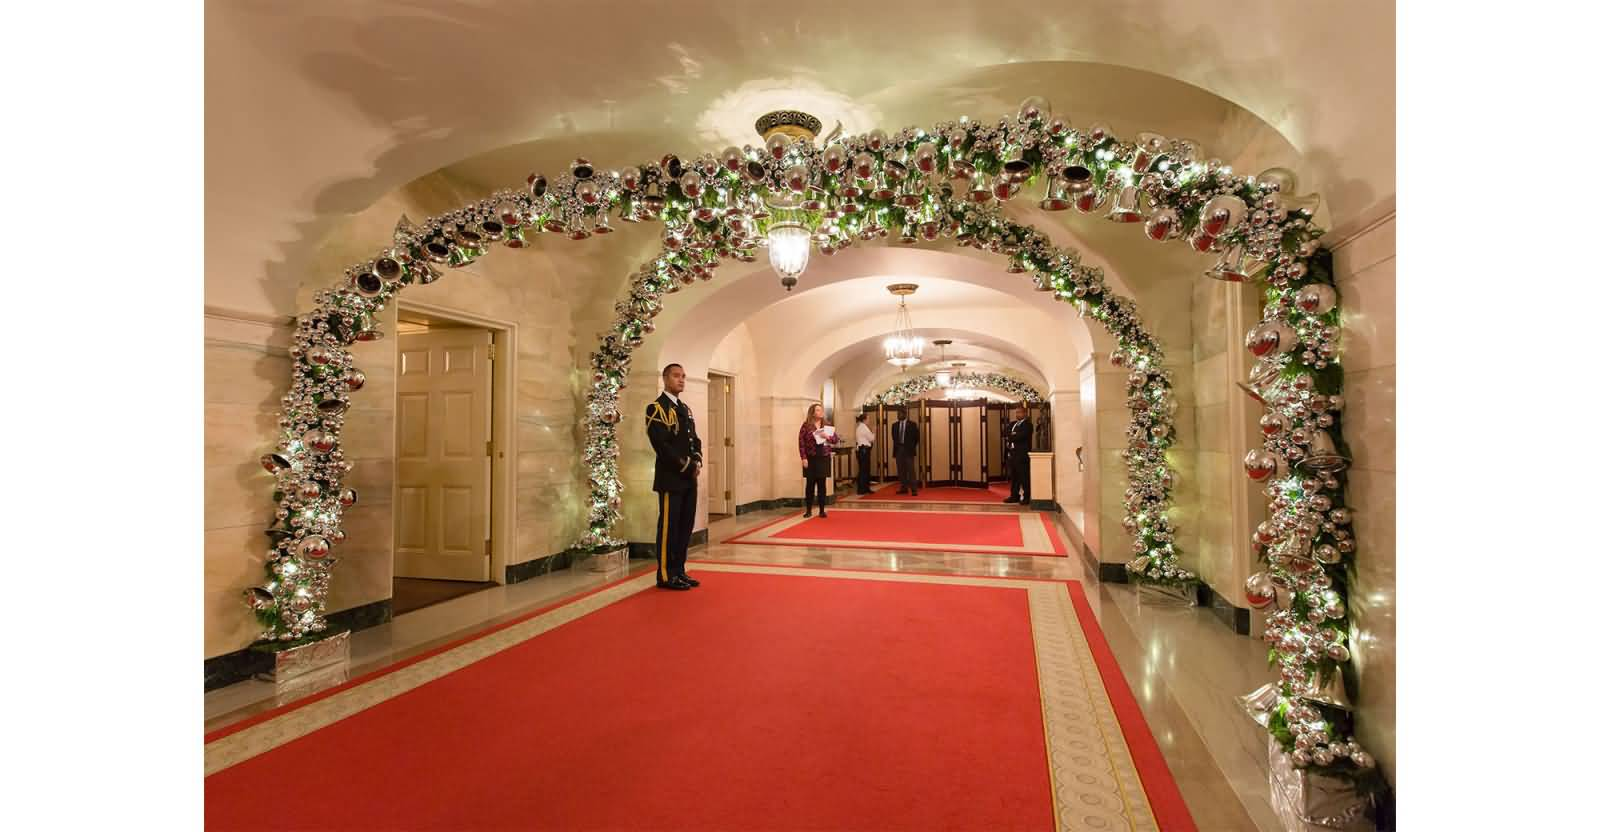 20 Amazing Inside Pictures Of The White House In Washington Dc